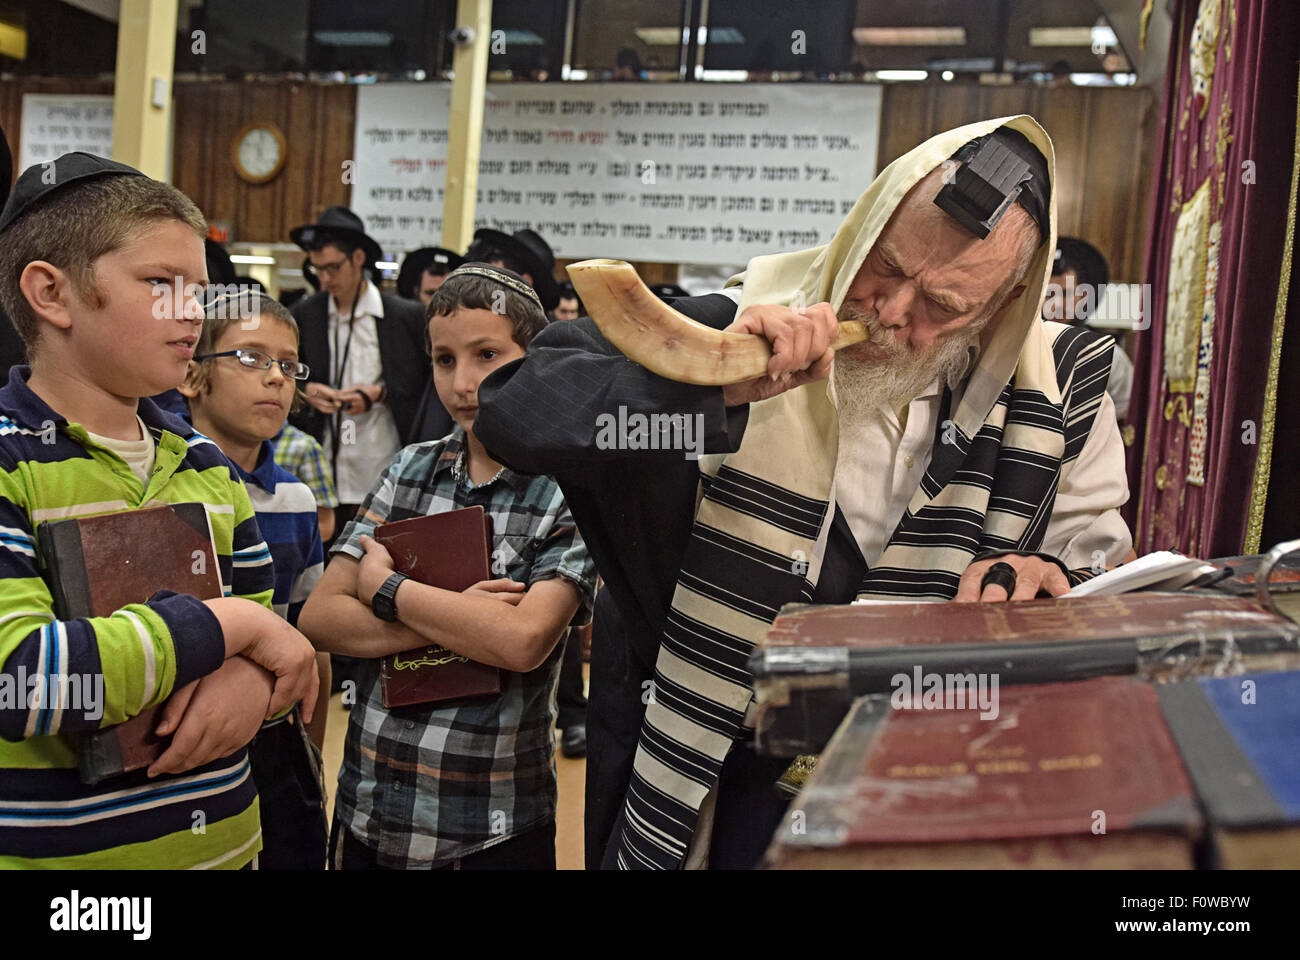 A very religious Jewish Rabbi blowing a shofar - ram's horn - at morning services before the New Year. In Brooklyn, - Stock Image